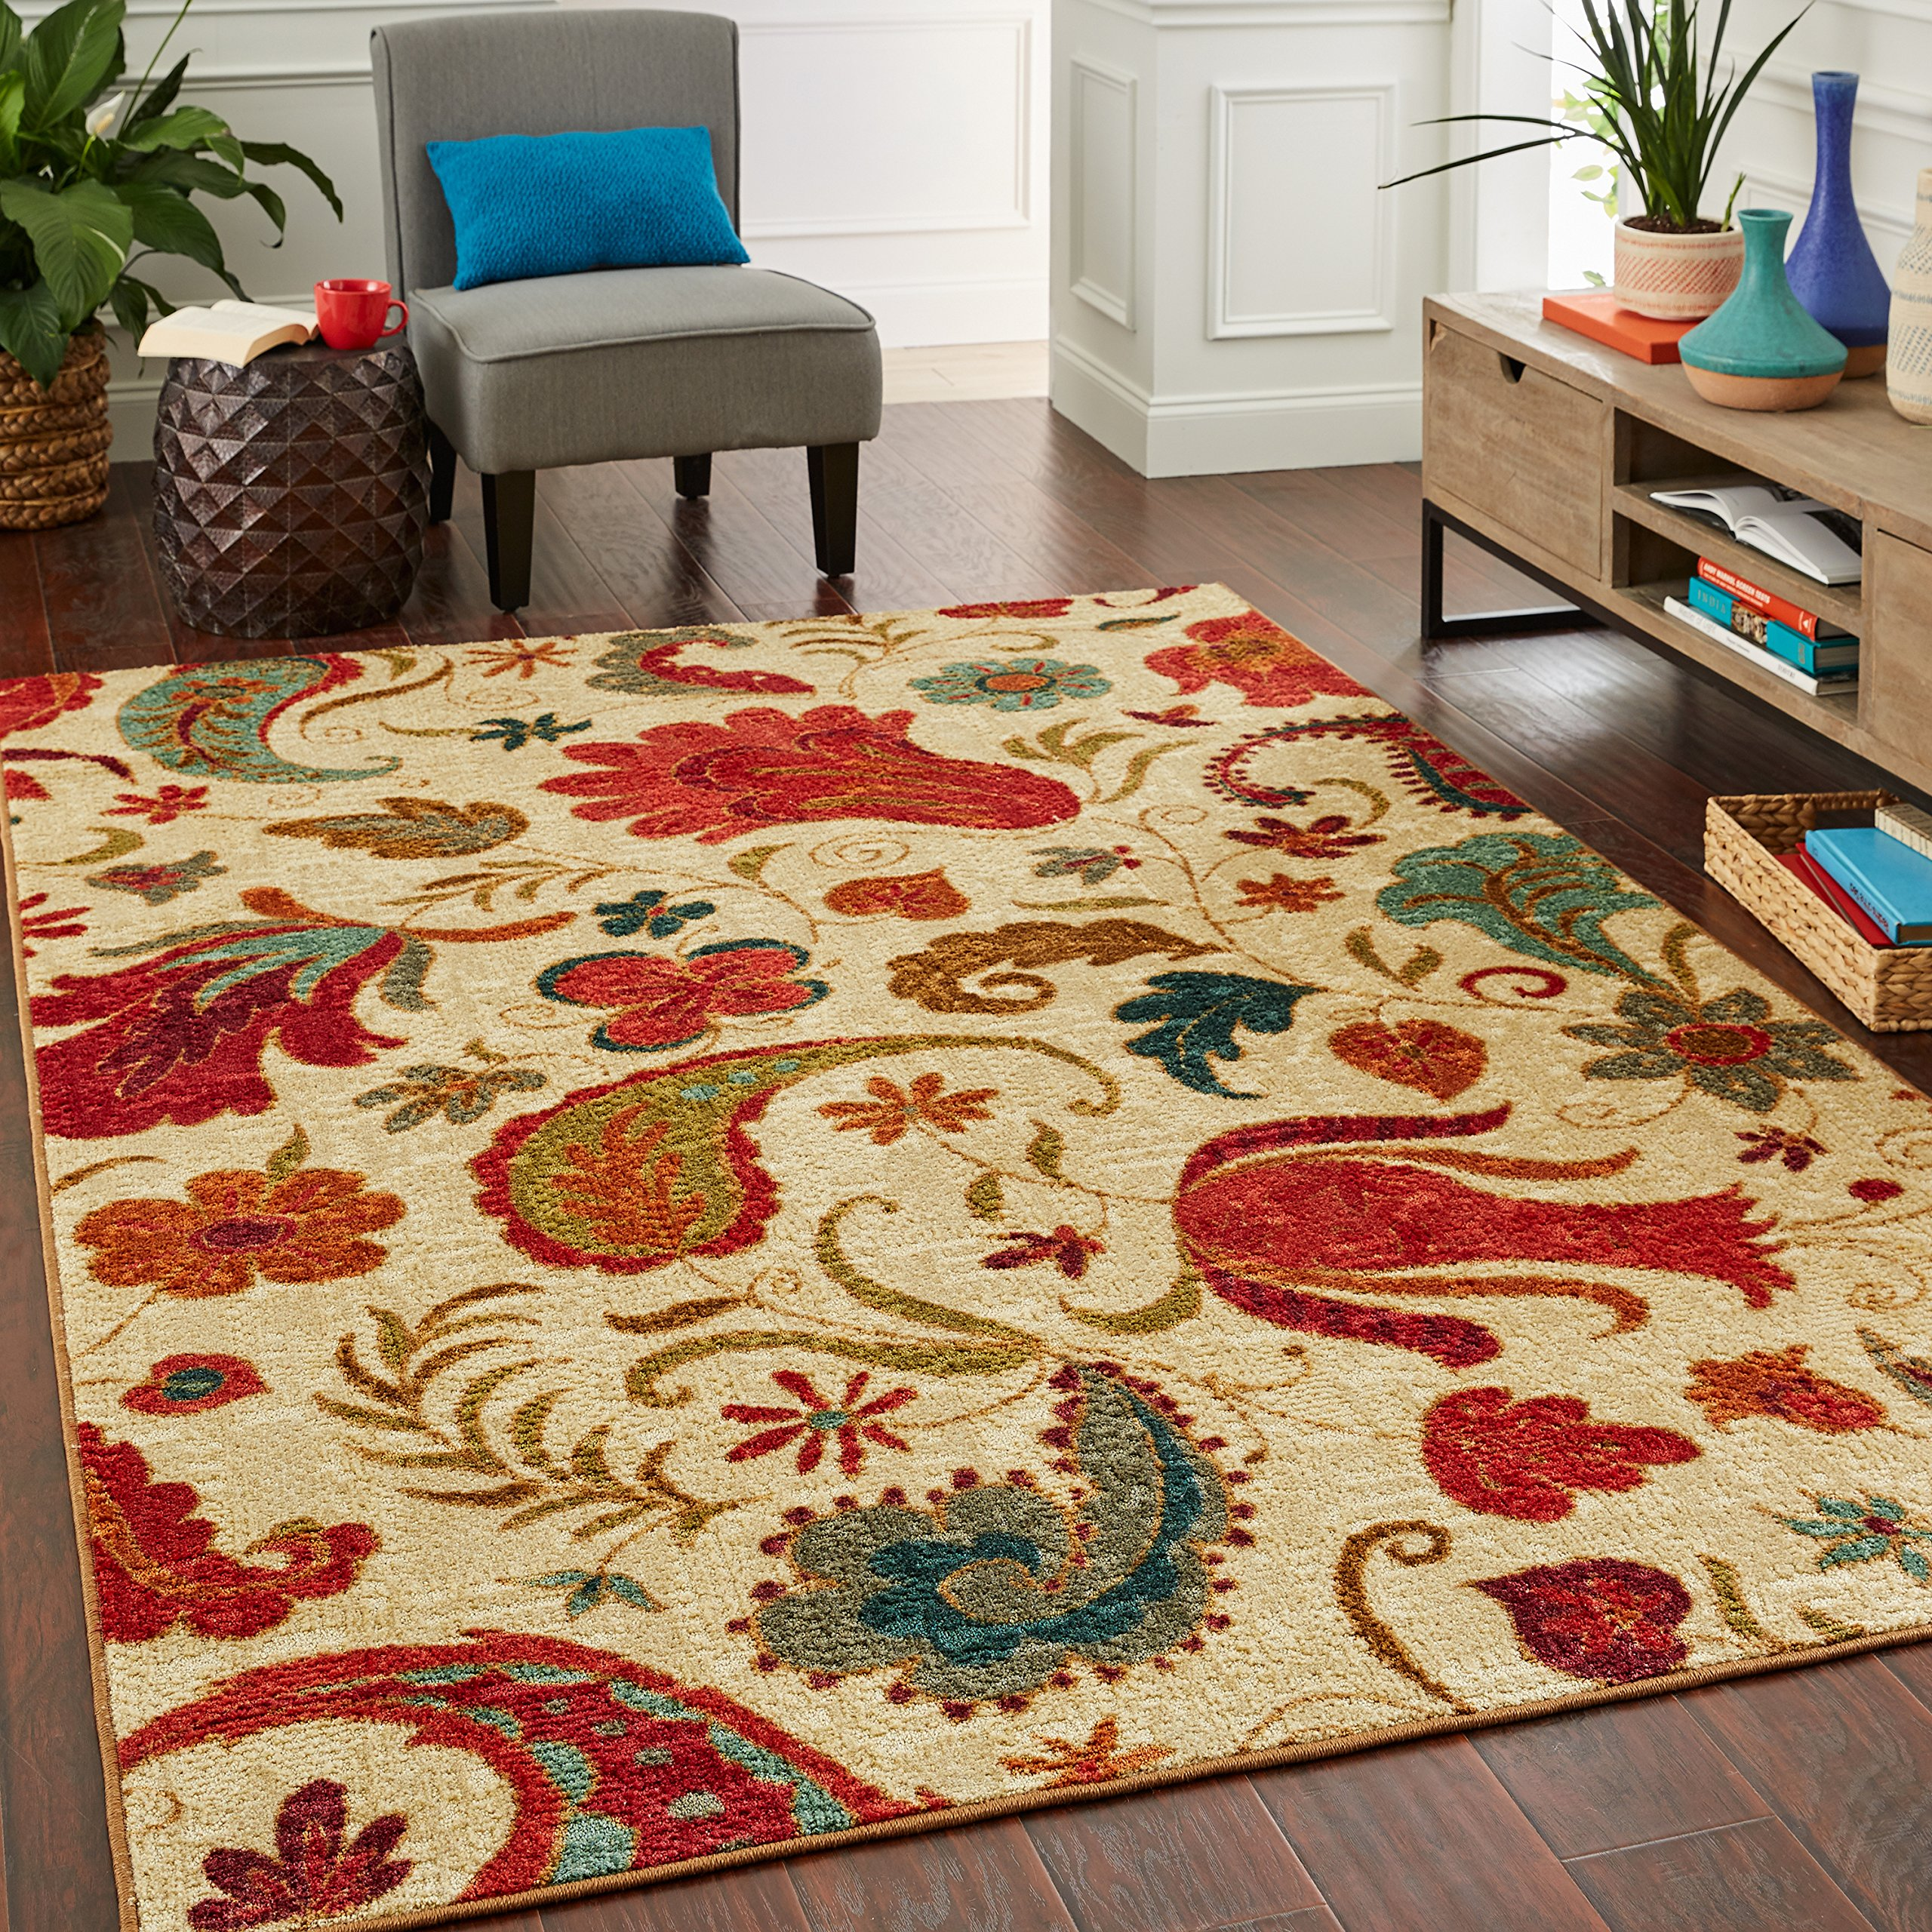 Mohawk Home Strata Contains: 1'8x2'10, 2'x5' Tropical Acres Rug Set, 7'6x10', Beige